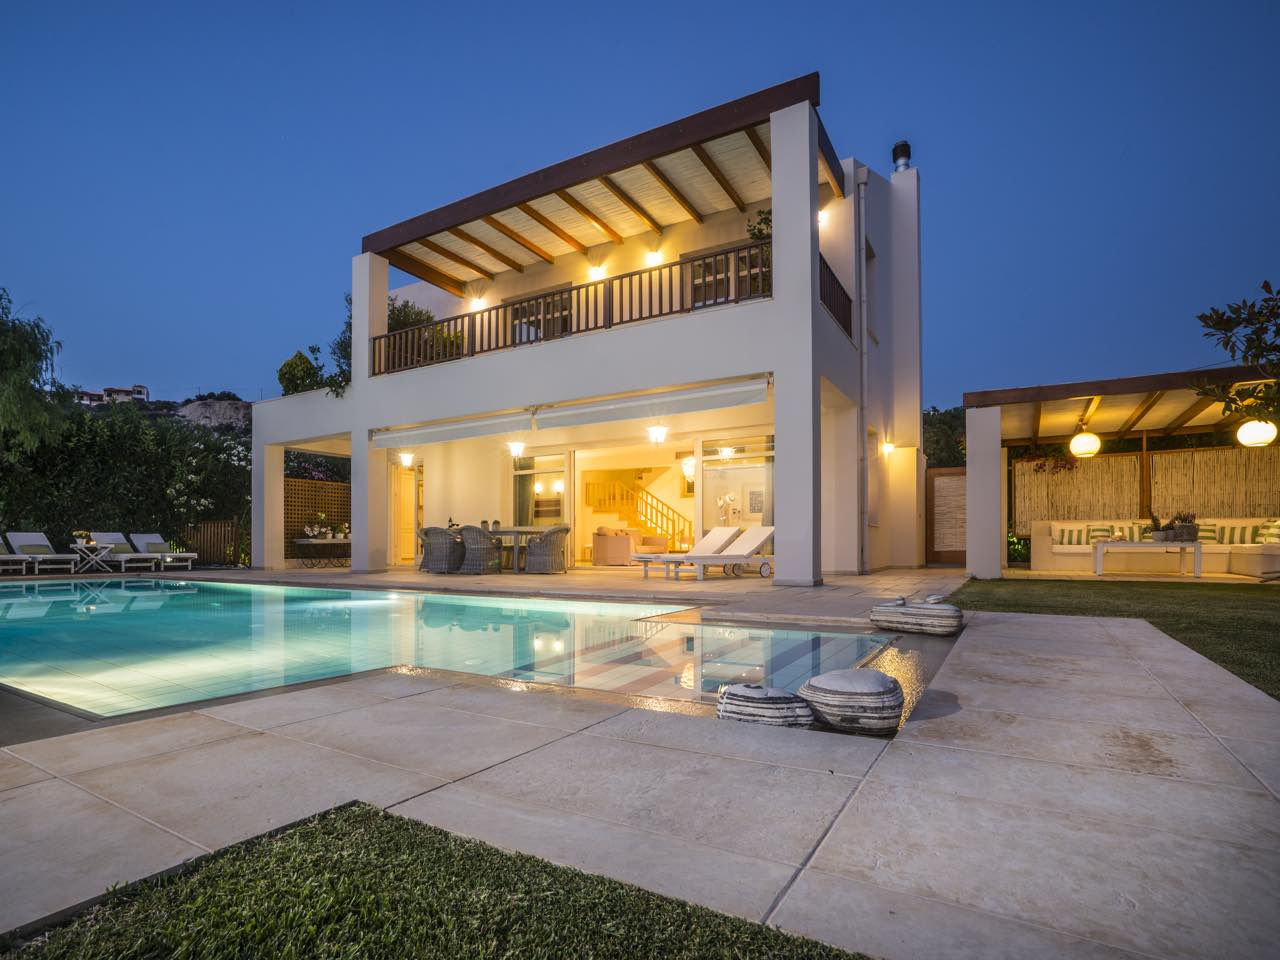 Top 5 Best Villas In Crete